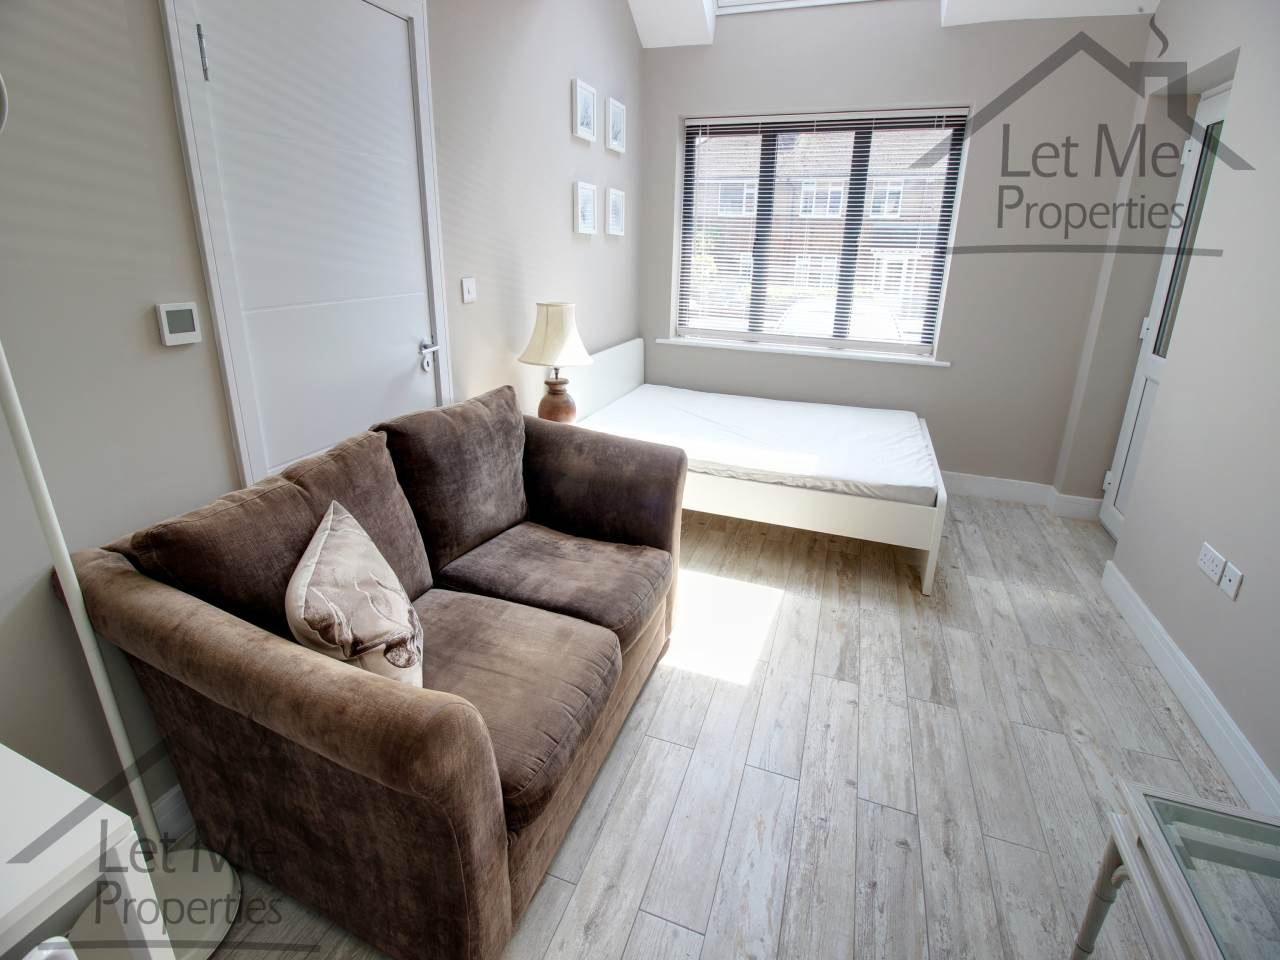 chelsea sofa st albans dimensions of queen bed studio flat to rent windmill avenue jersey